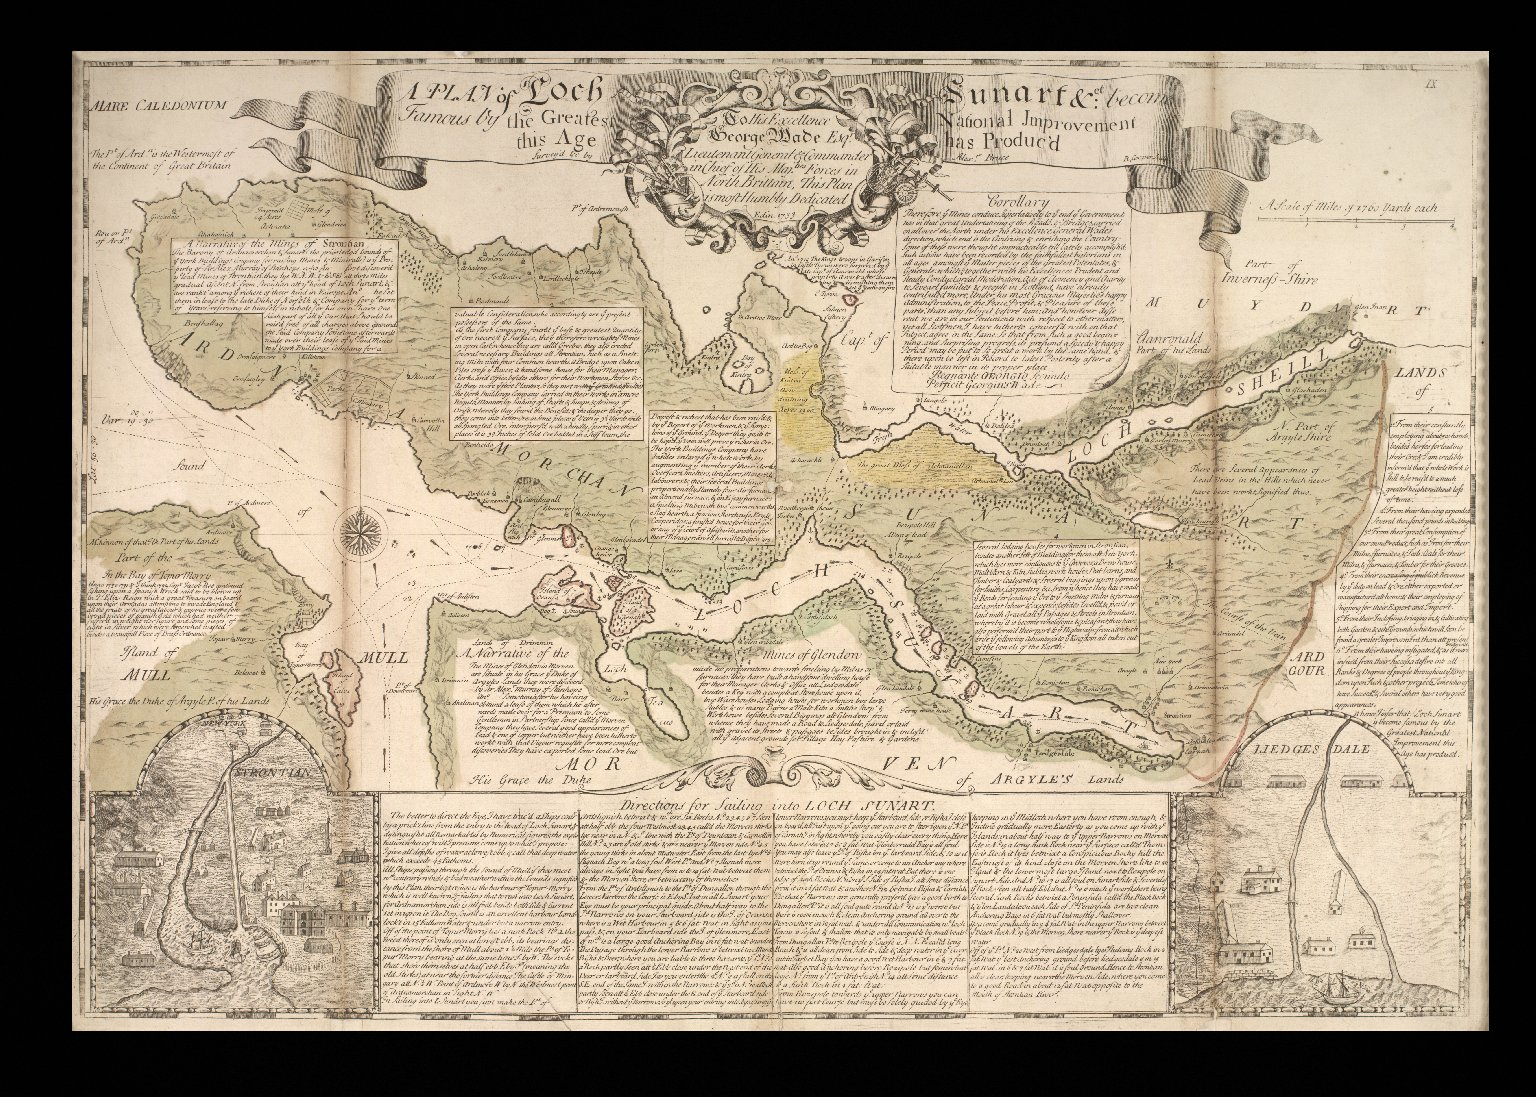 A plan of Loch Sunart ... become famous by the greatest national improvement this age has produc'd [1 of 1]